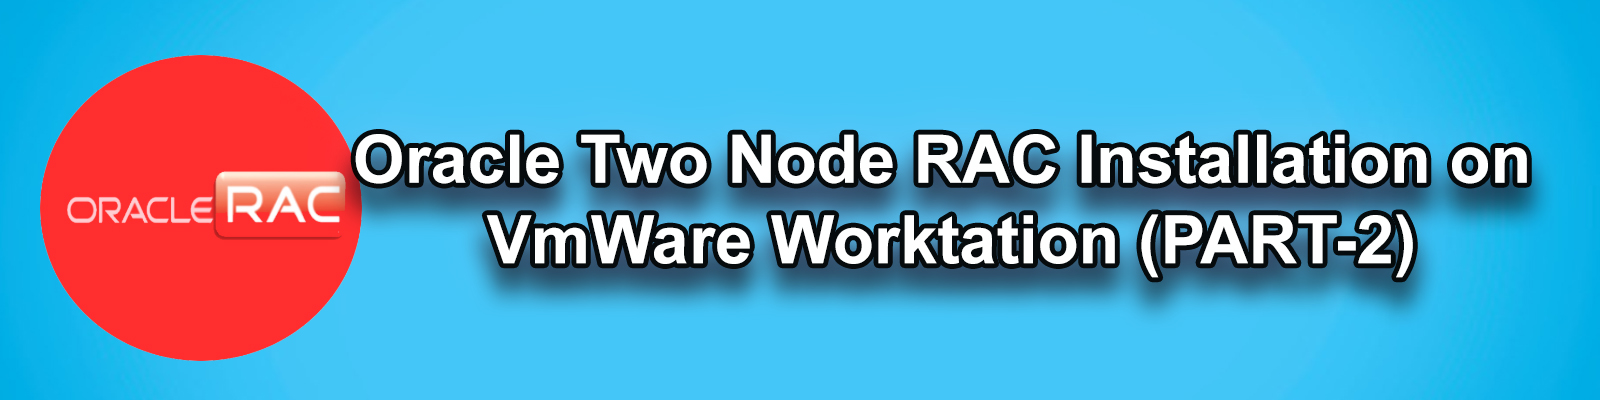 ORACLE TWO NODE RAC INSTALLATION ON VMWARE WORKSTATION (PART-2)